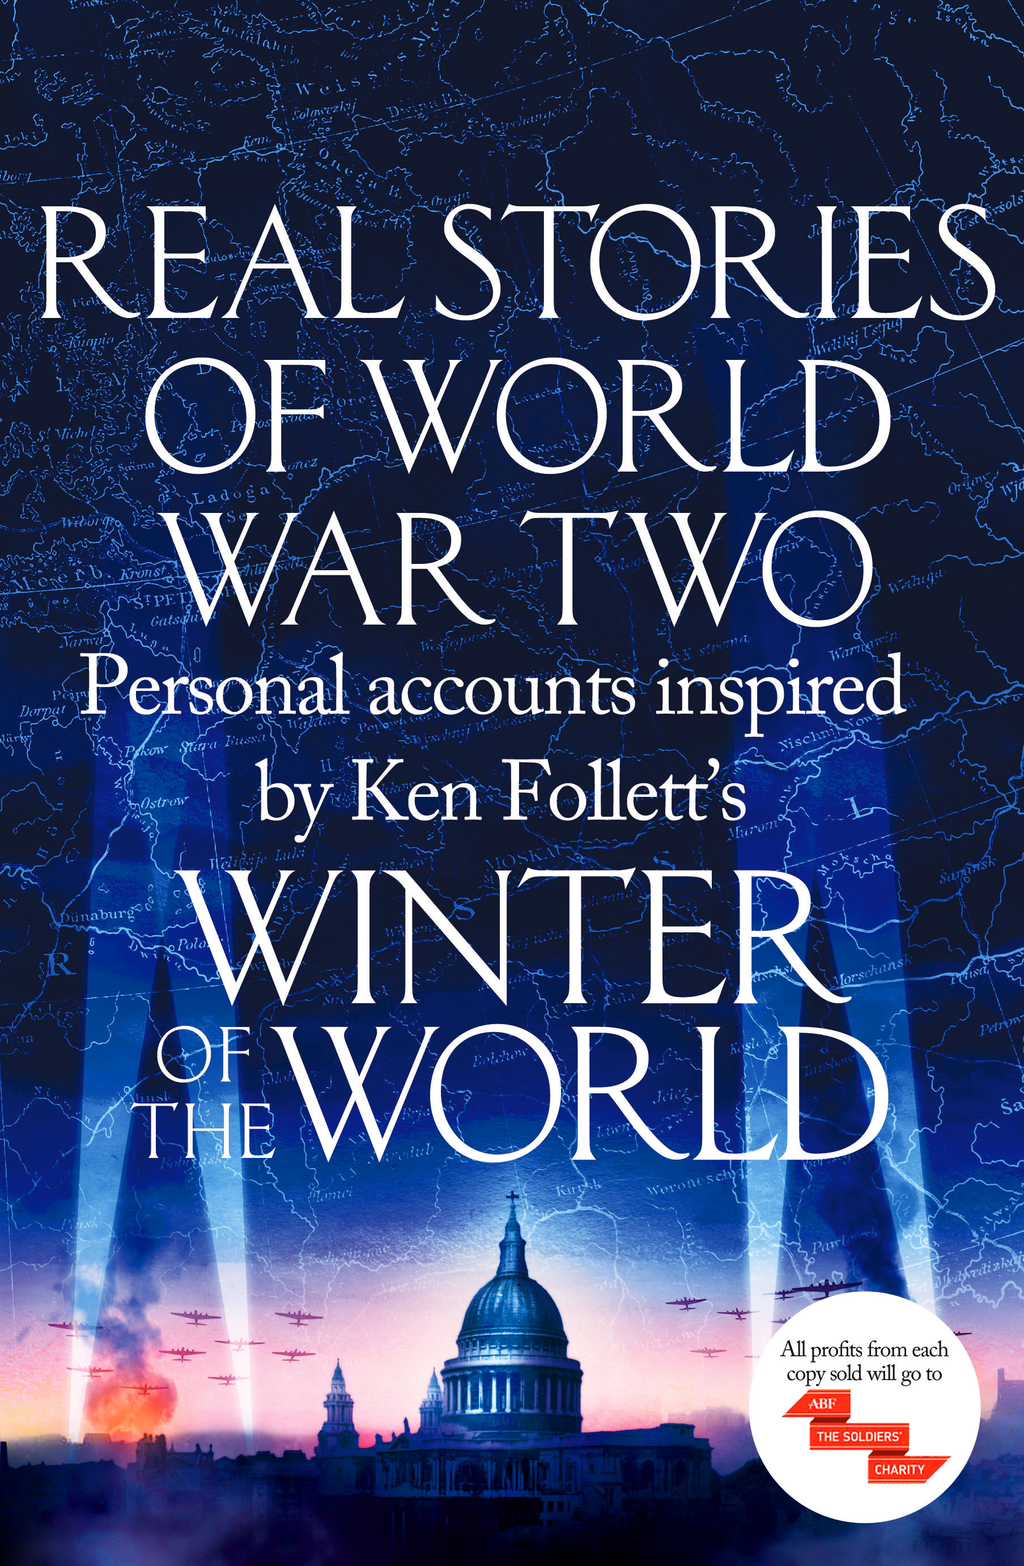 Real Stories of World War Two Personal accounts inspired by Ken Follett's Winter of the World